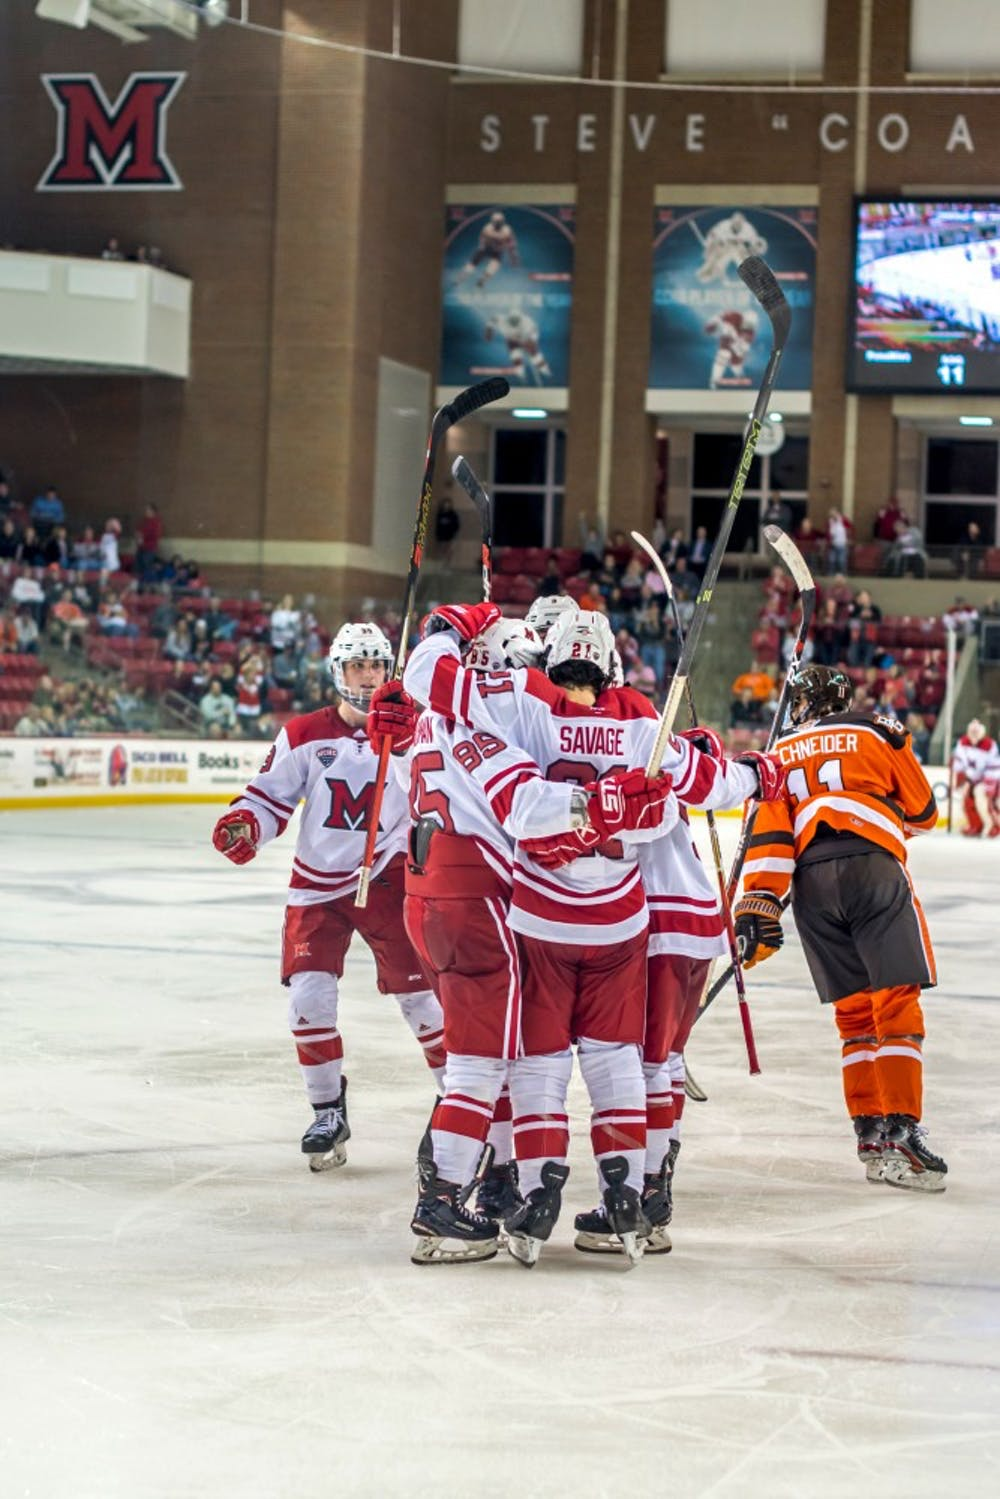 <p>Five RedHawks celebrate against Bowling Green at the Goggin Ice Center Sunday. In his first year as head coach, Chris Bergeron is trying to create a new culture.</p><p><br/><br/><br/><br/><br/><br/></p>